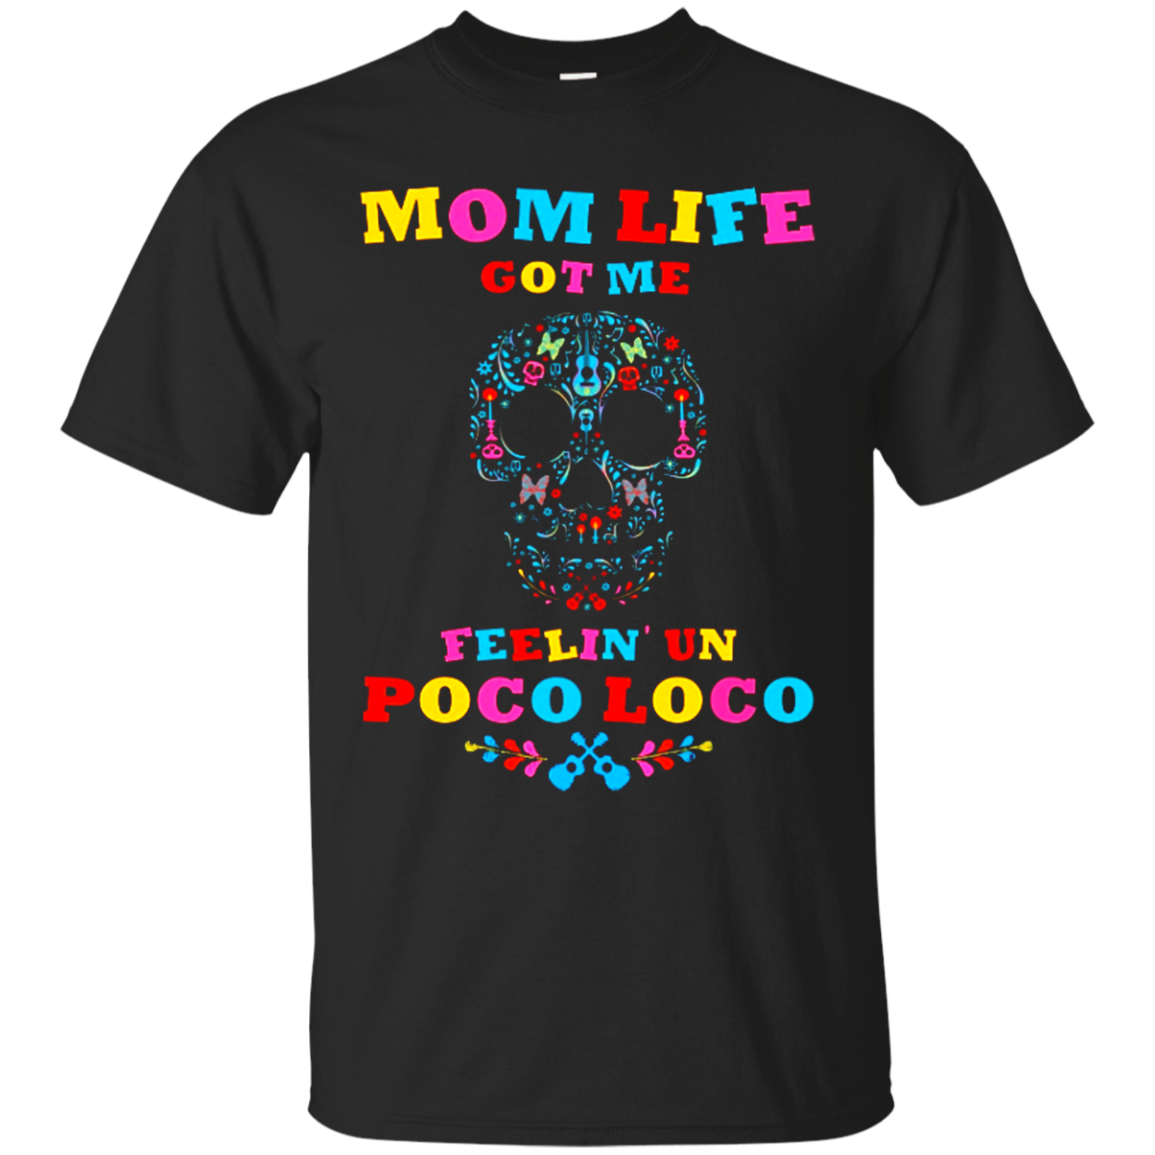 Coco t png. Mom life got me